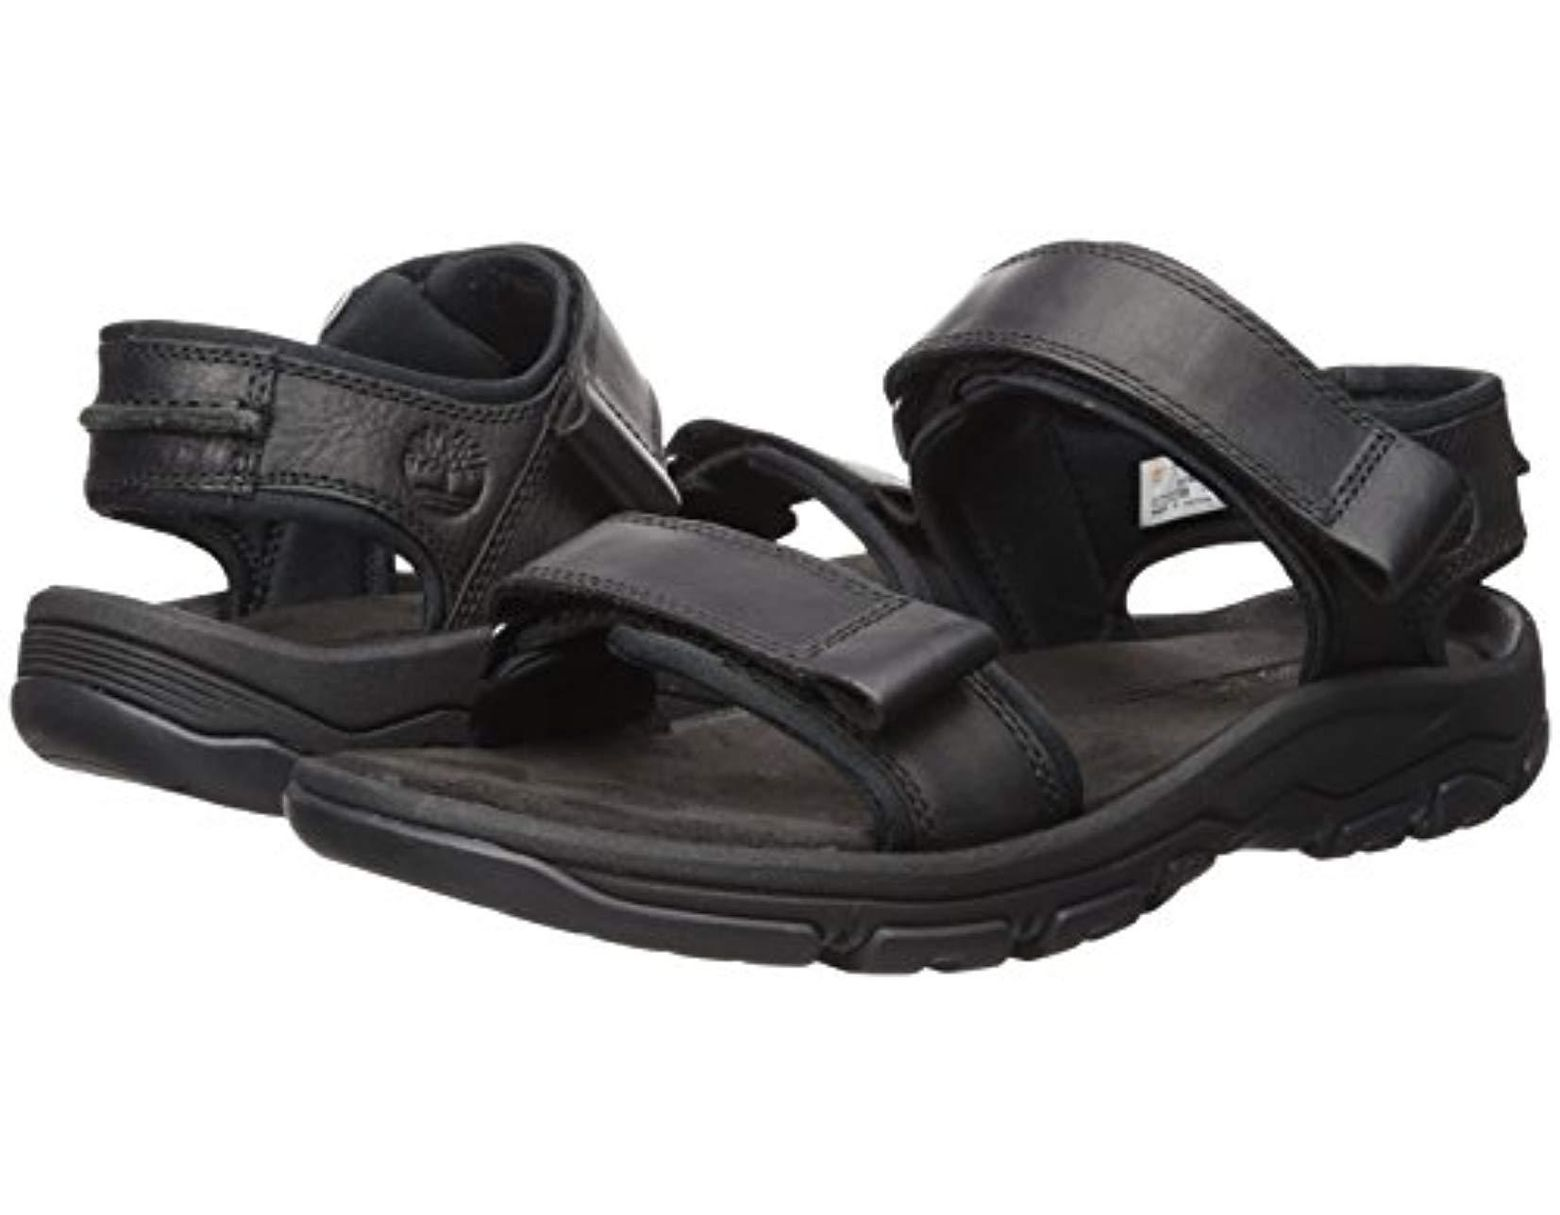 In Roslindale Sandal Lyst Black Timberland Men For Strap 2 3lcTK1FJ